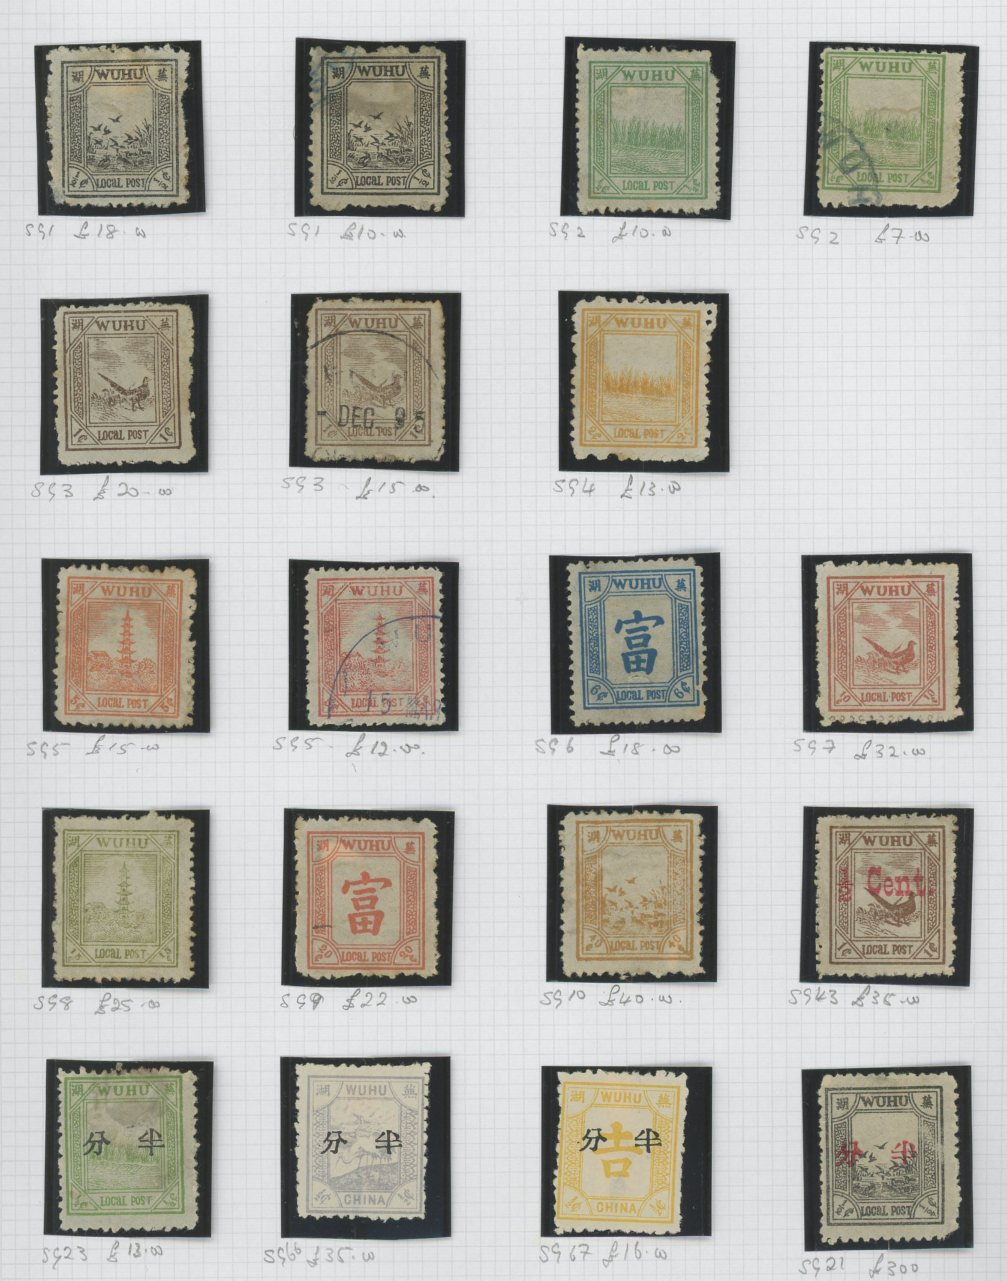 Municipal Posts - Wuhu collection on album pages (27)